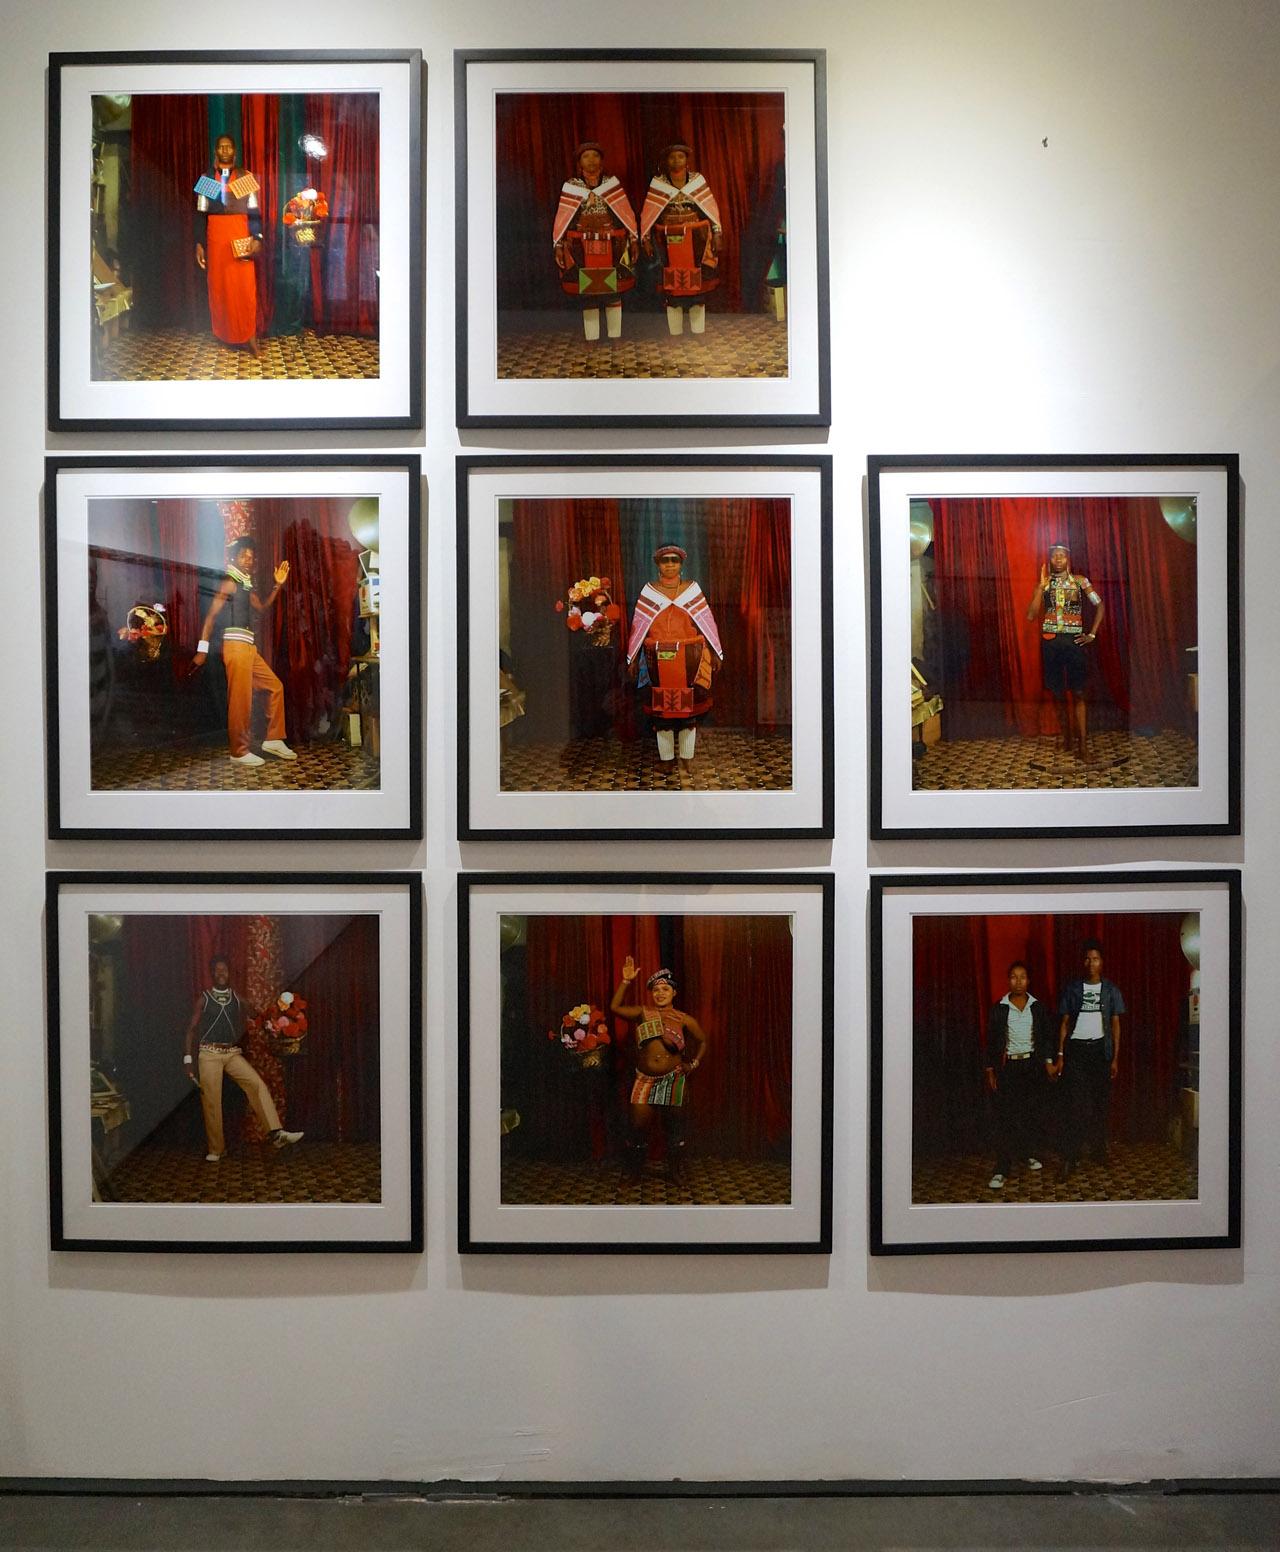 Wall of photos from Bobson Sukhdeo Mohanlall's studio at Axis Gallery's booth (click to enlarge)